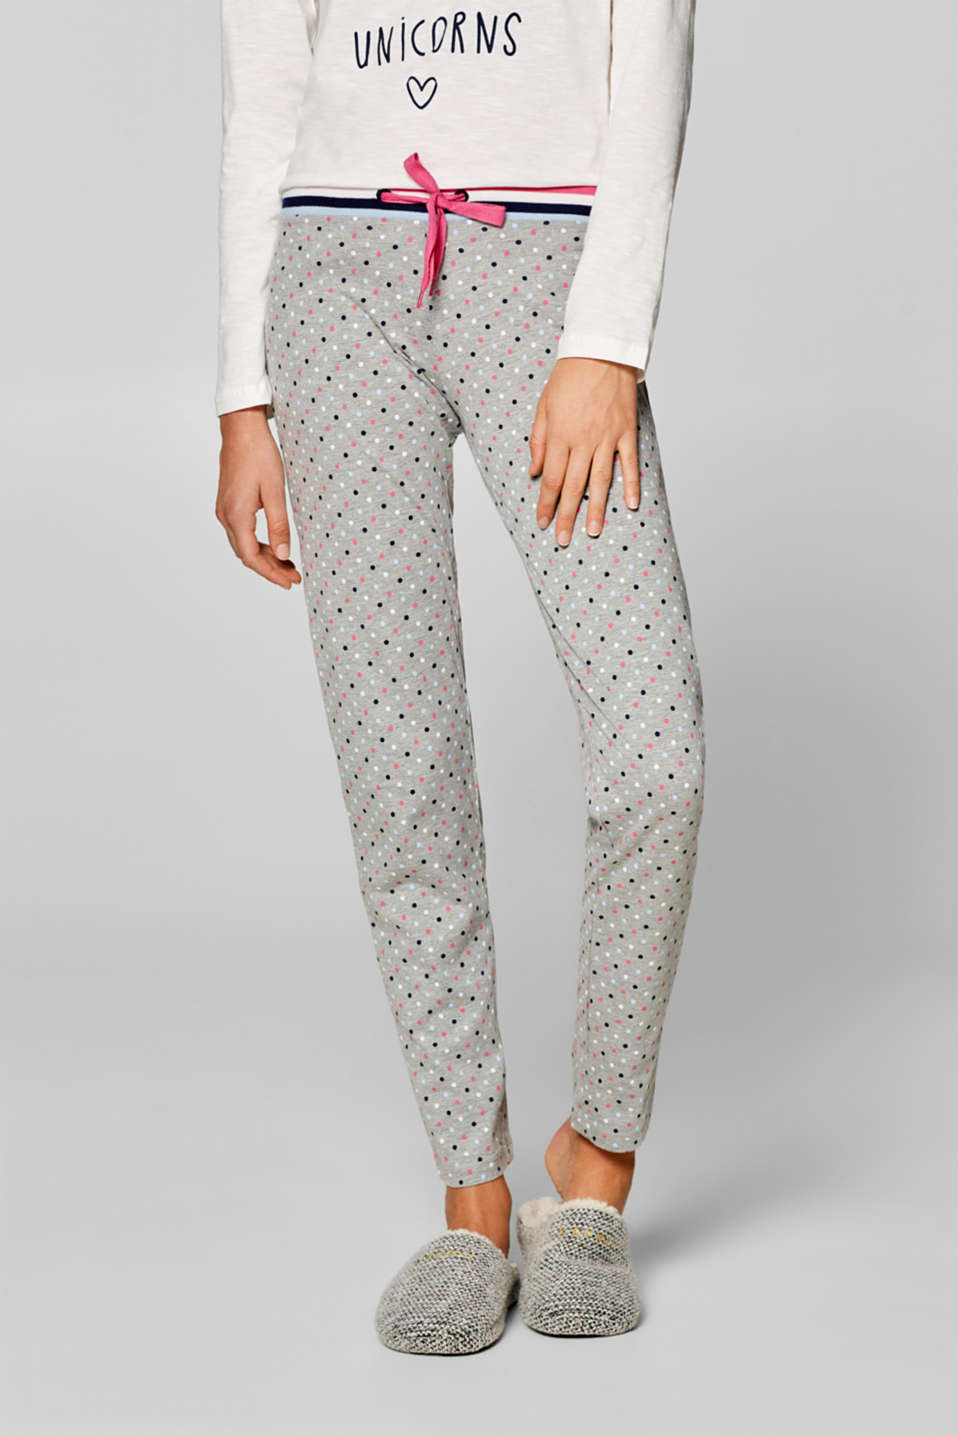 Esprit - Jersey pyjamas bottoms with a polka dot print